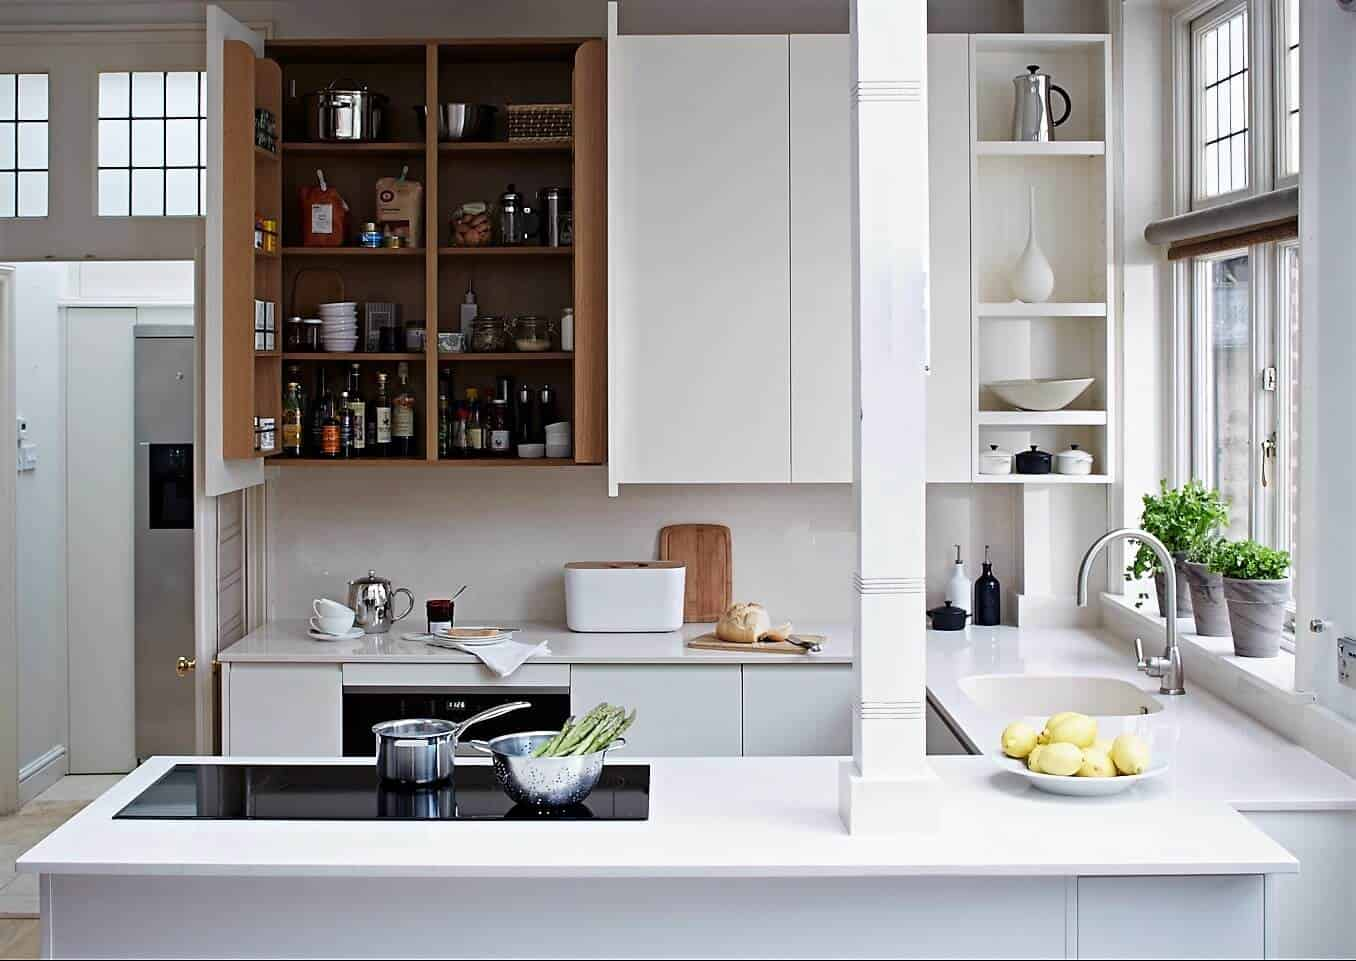 Small handleless kitchen John Lewis of Hungerford